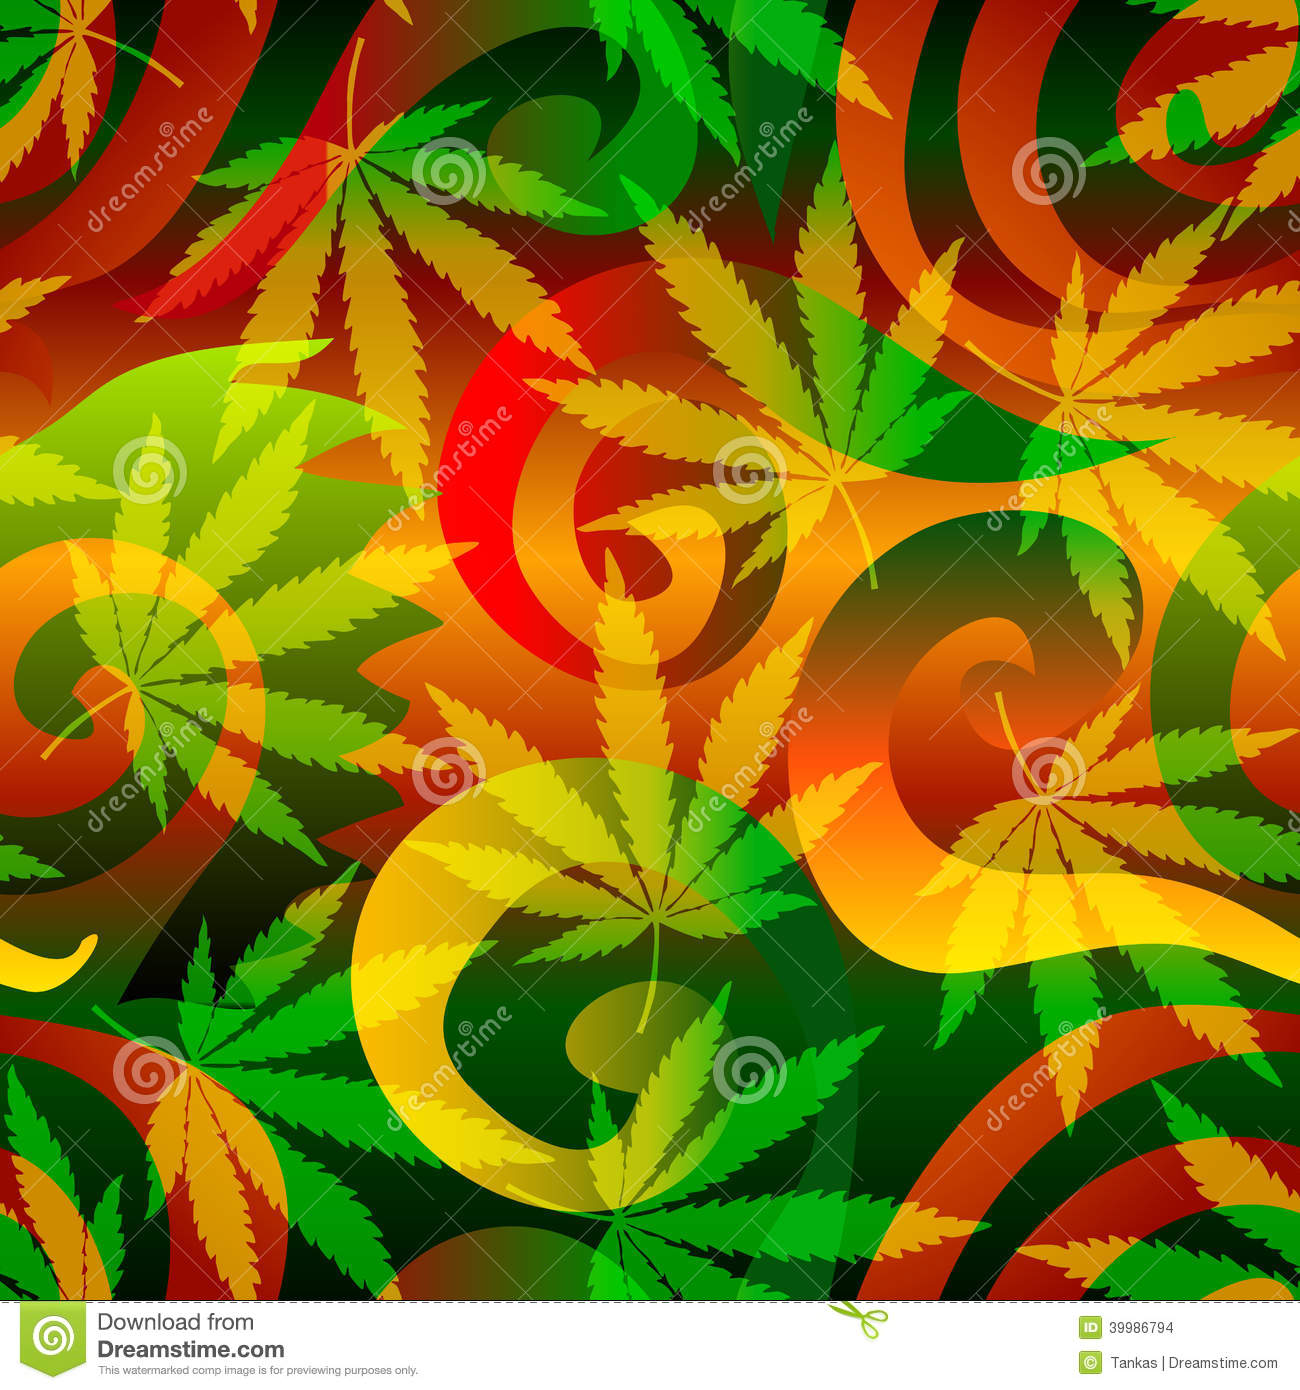 Rasta Girl Wallpaper Marijuana Background Stock Vector Image 39986794